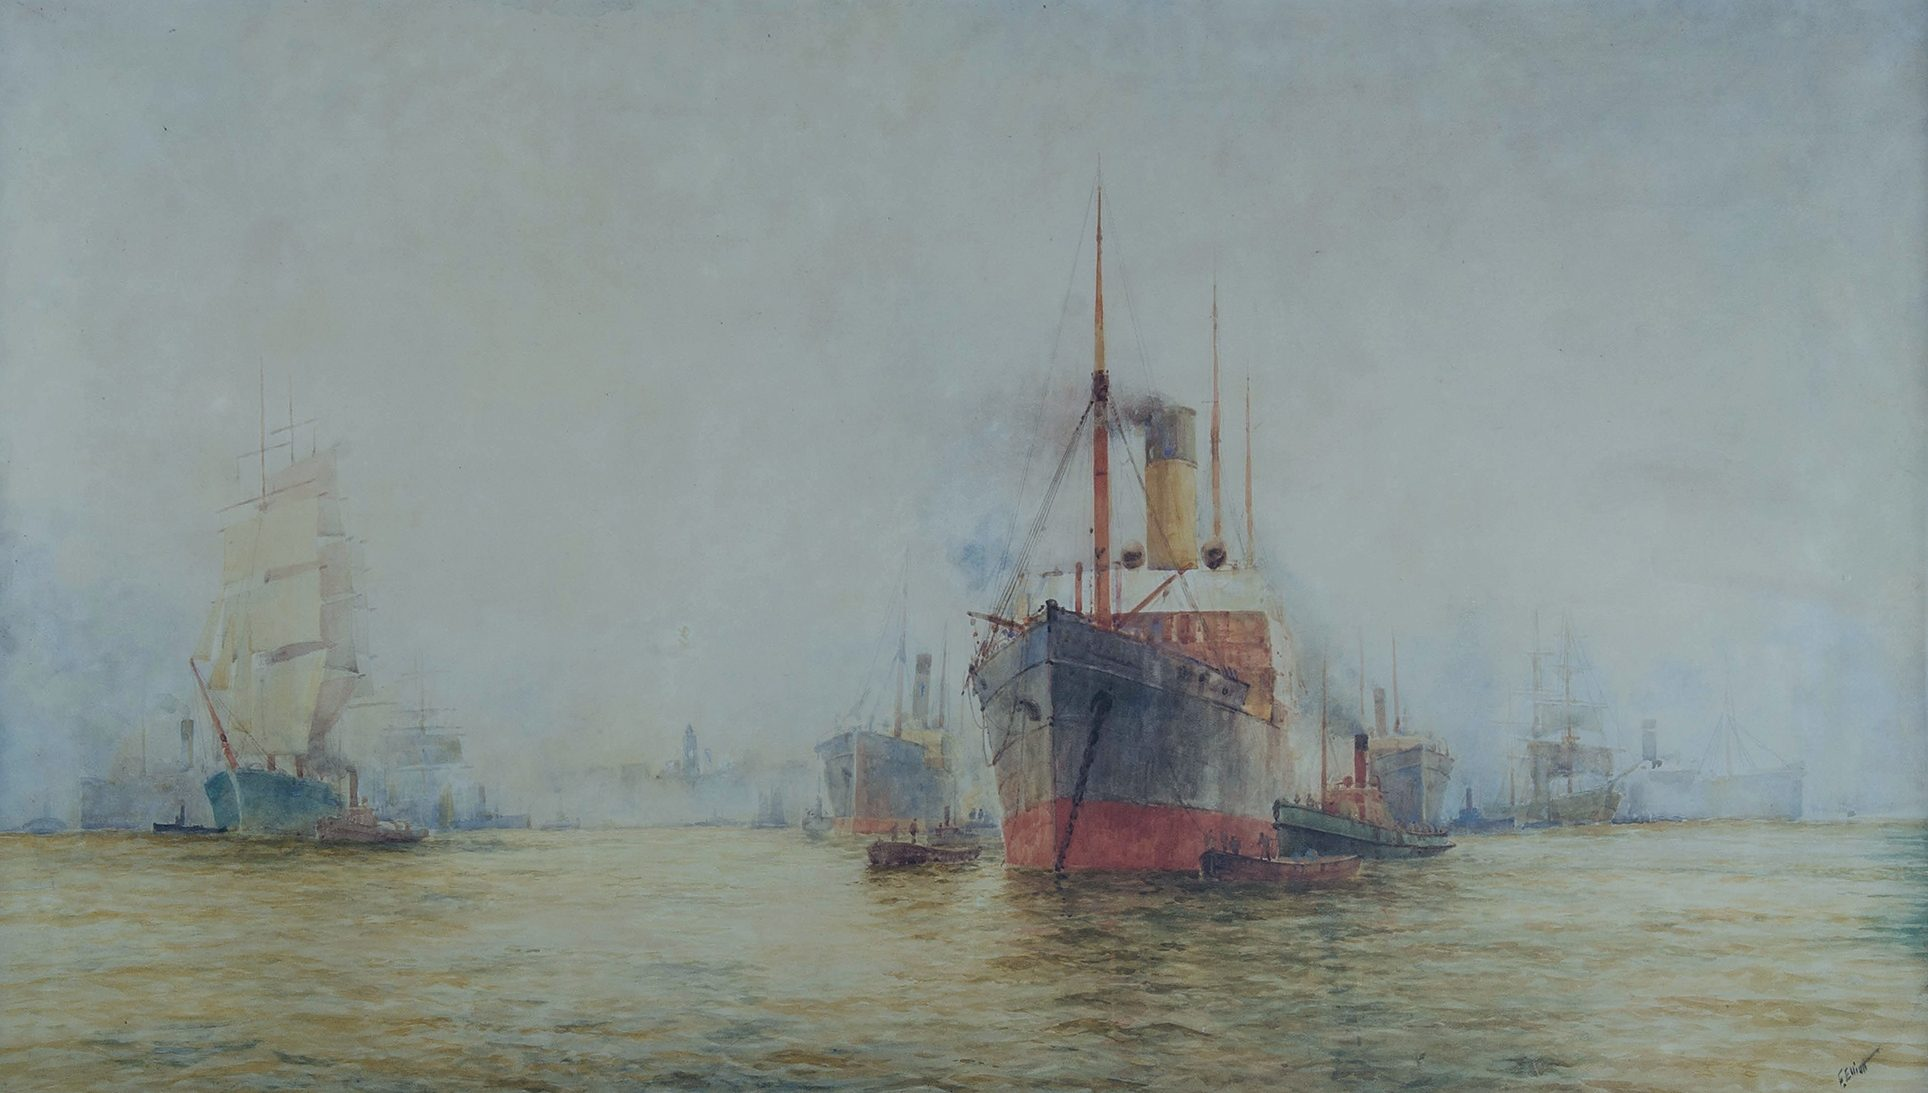 'ELLIOTT, Frederick (1864-1949): Sails & Steam, Sydney Harbour. Watercolour'